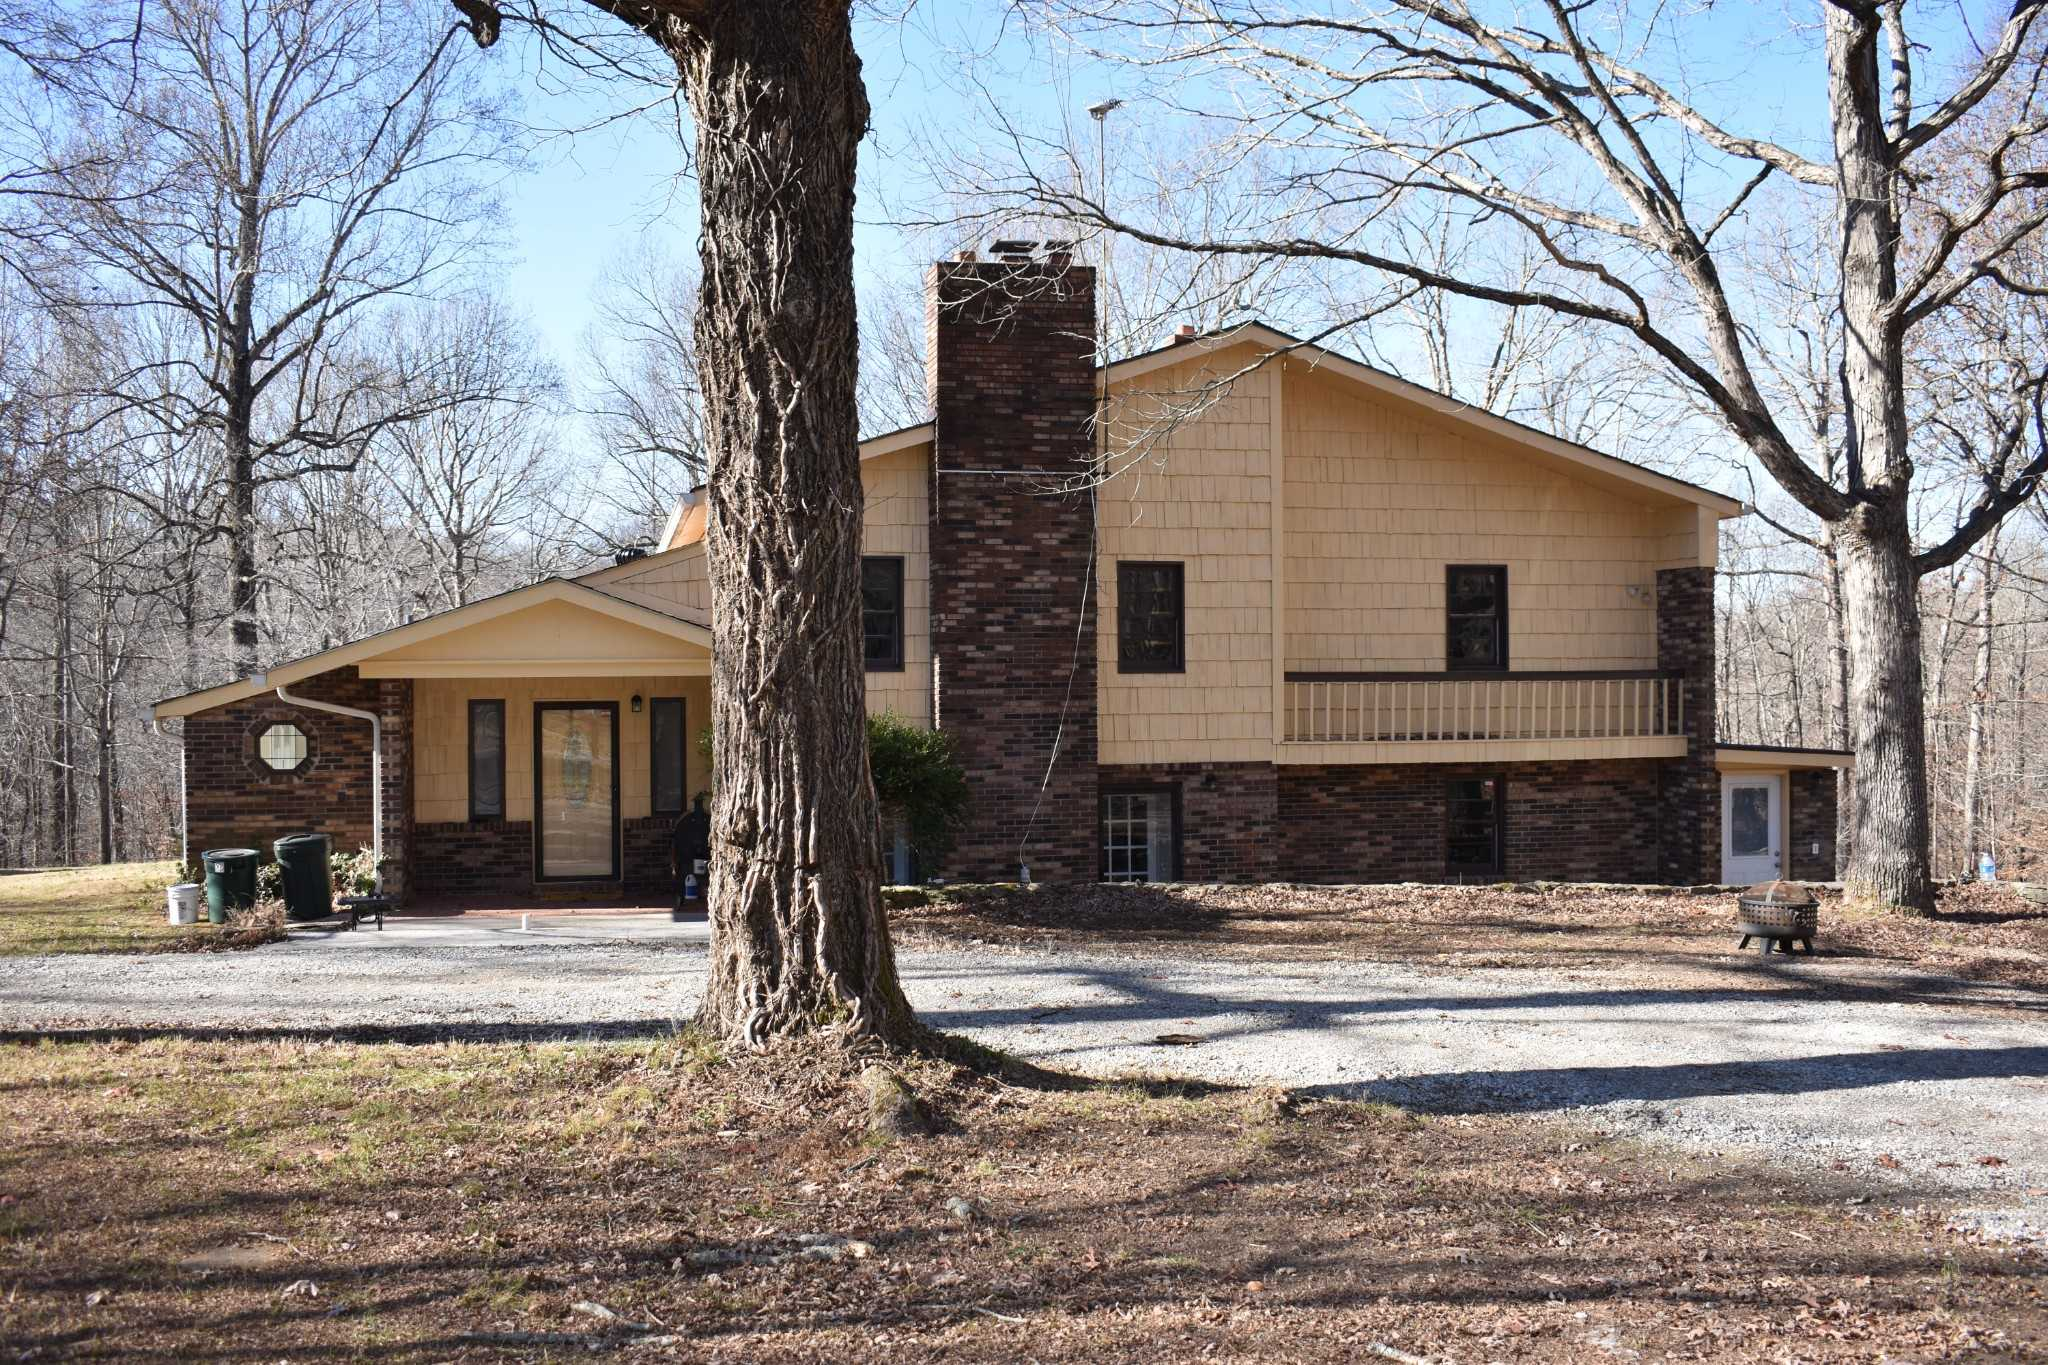 $550,000 - 4Br/5Ba -  for Sale in Na, Goodlettsville